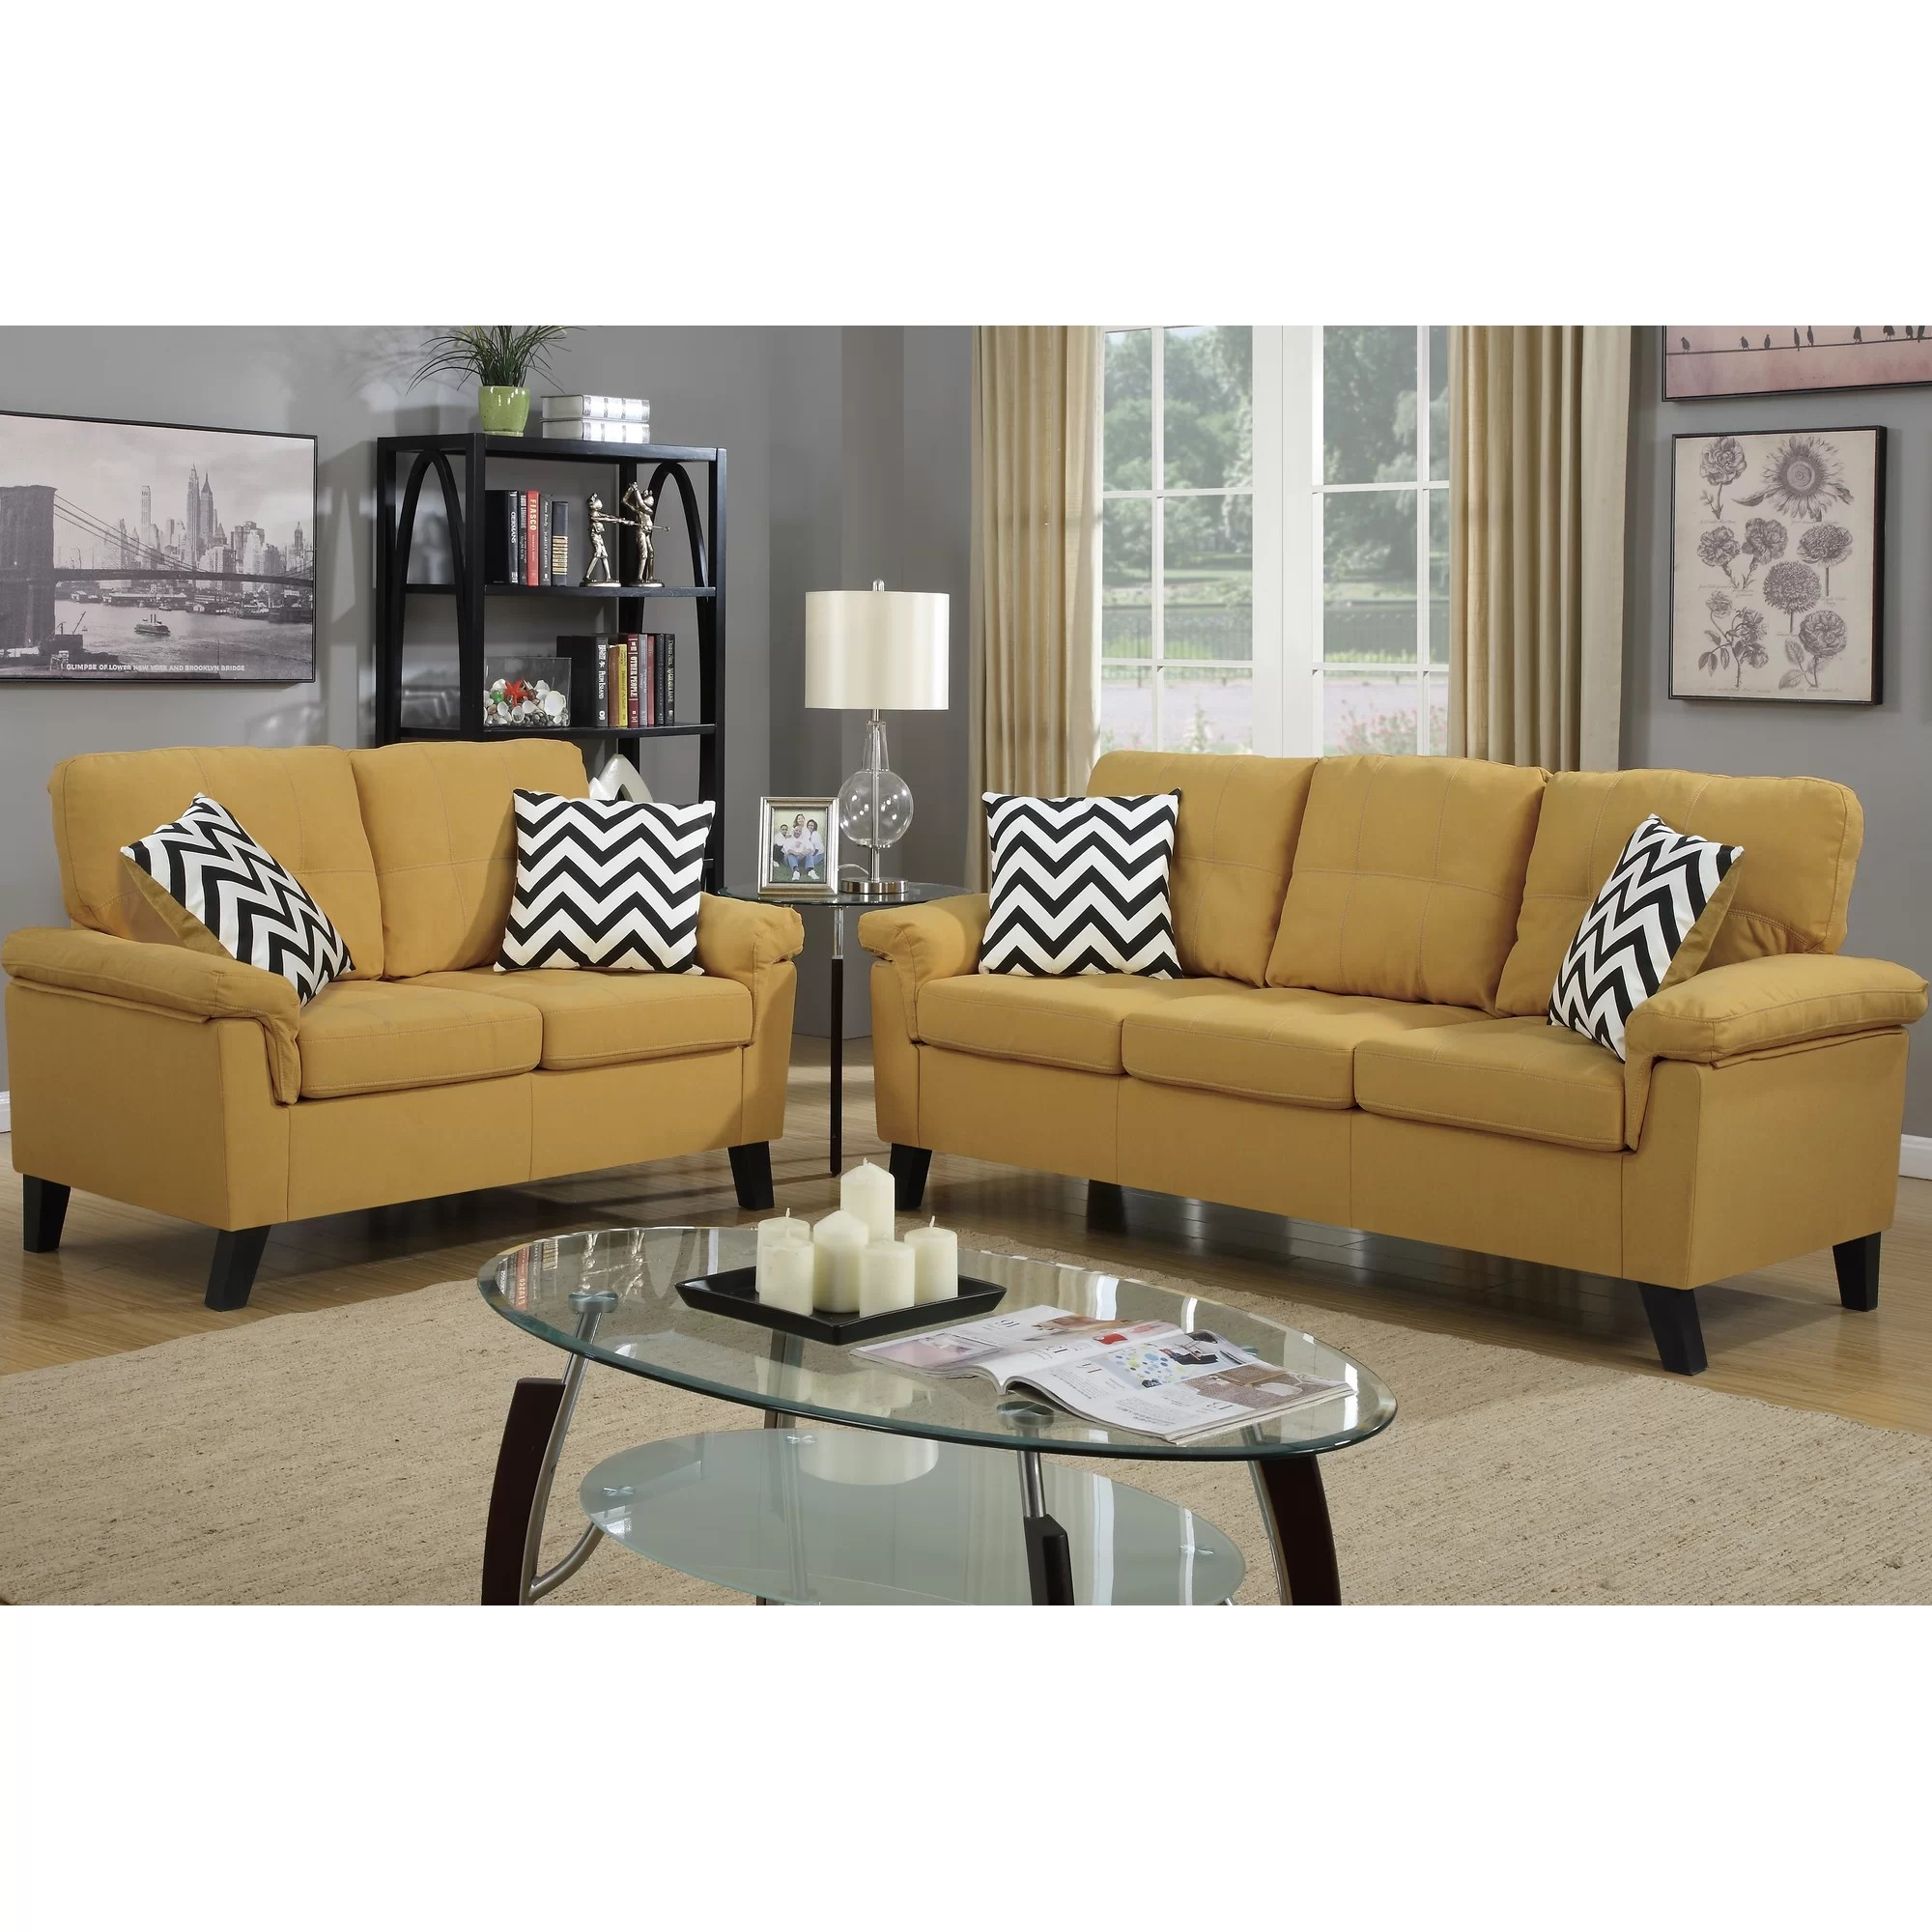 Sofa And Loveseat Sale Gucci